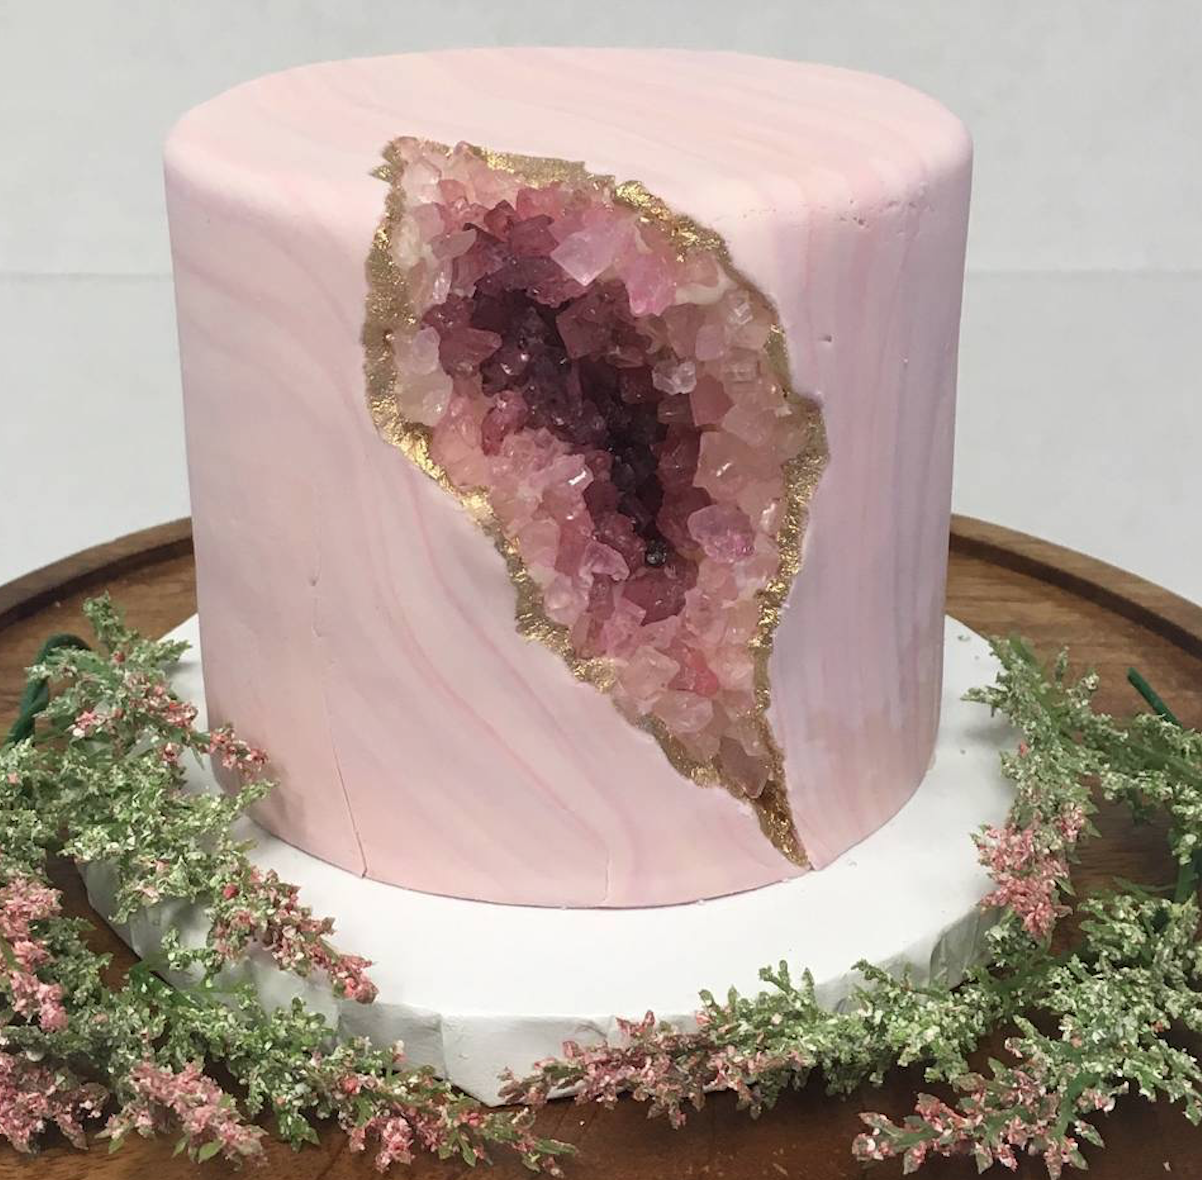 The now-infamous geode rock cake from Nadia Cakes.  Image courtesy of the Facebook page of Nadia Cakes.